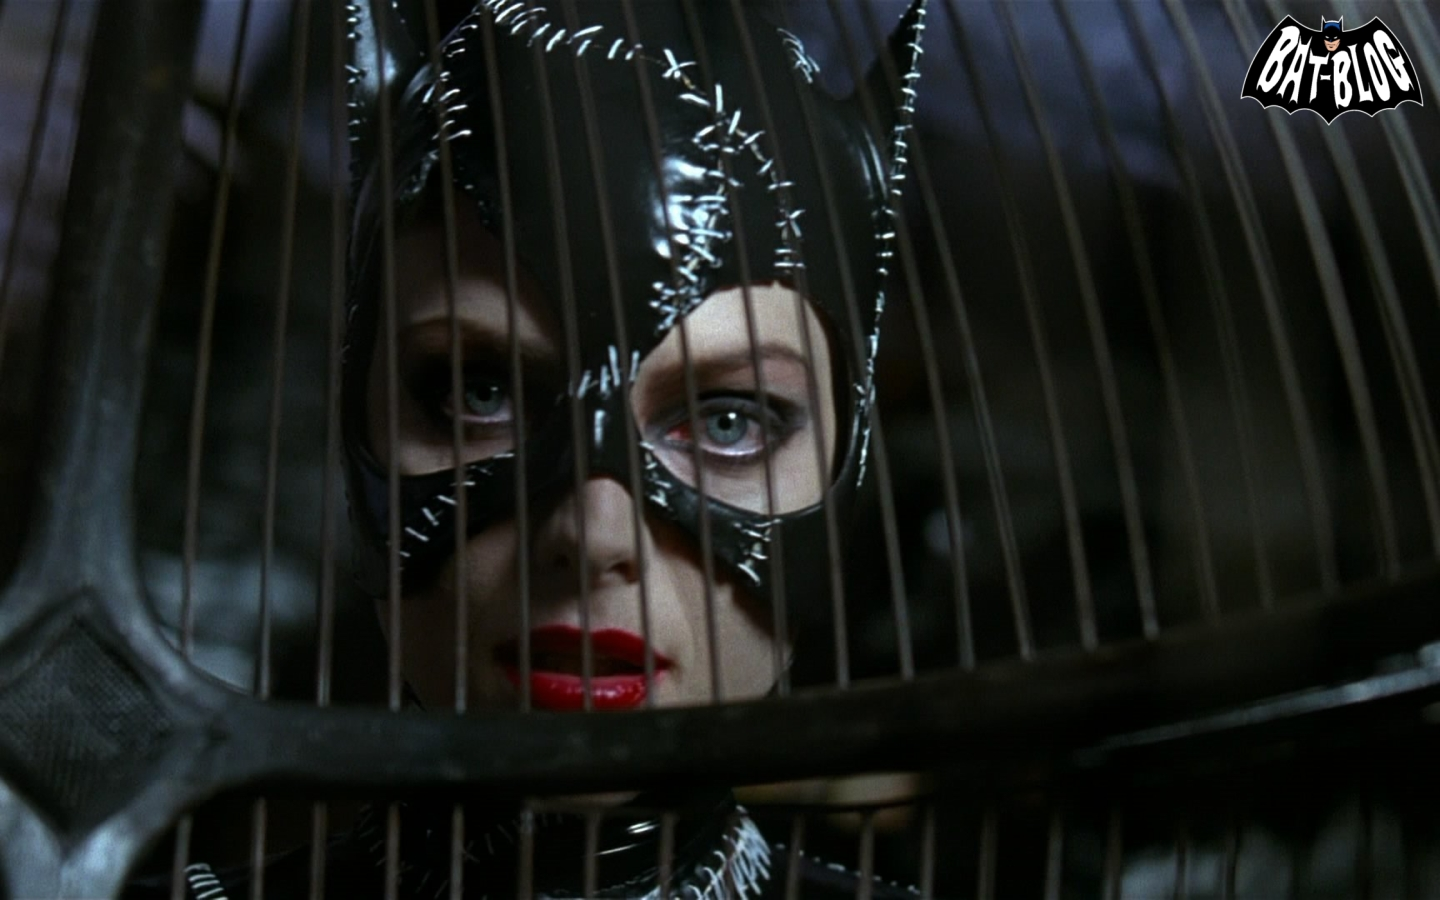 http://3.bp.blogspot.com/-ns6VwC80YUQ/TrAkdItsnJI/AAAAAAAAQuQ/kE7bTSRRxQs/s1600/wallpaper-batman-returns-movie-catwoman-1.jpg